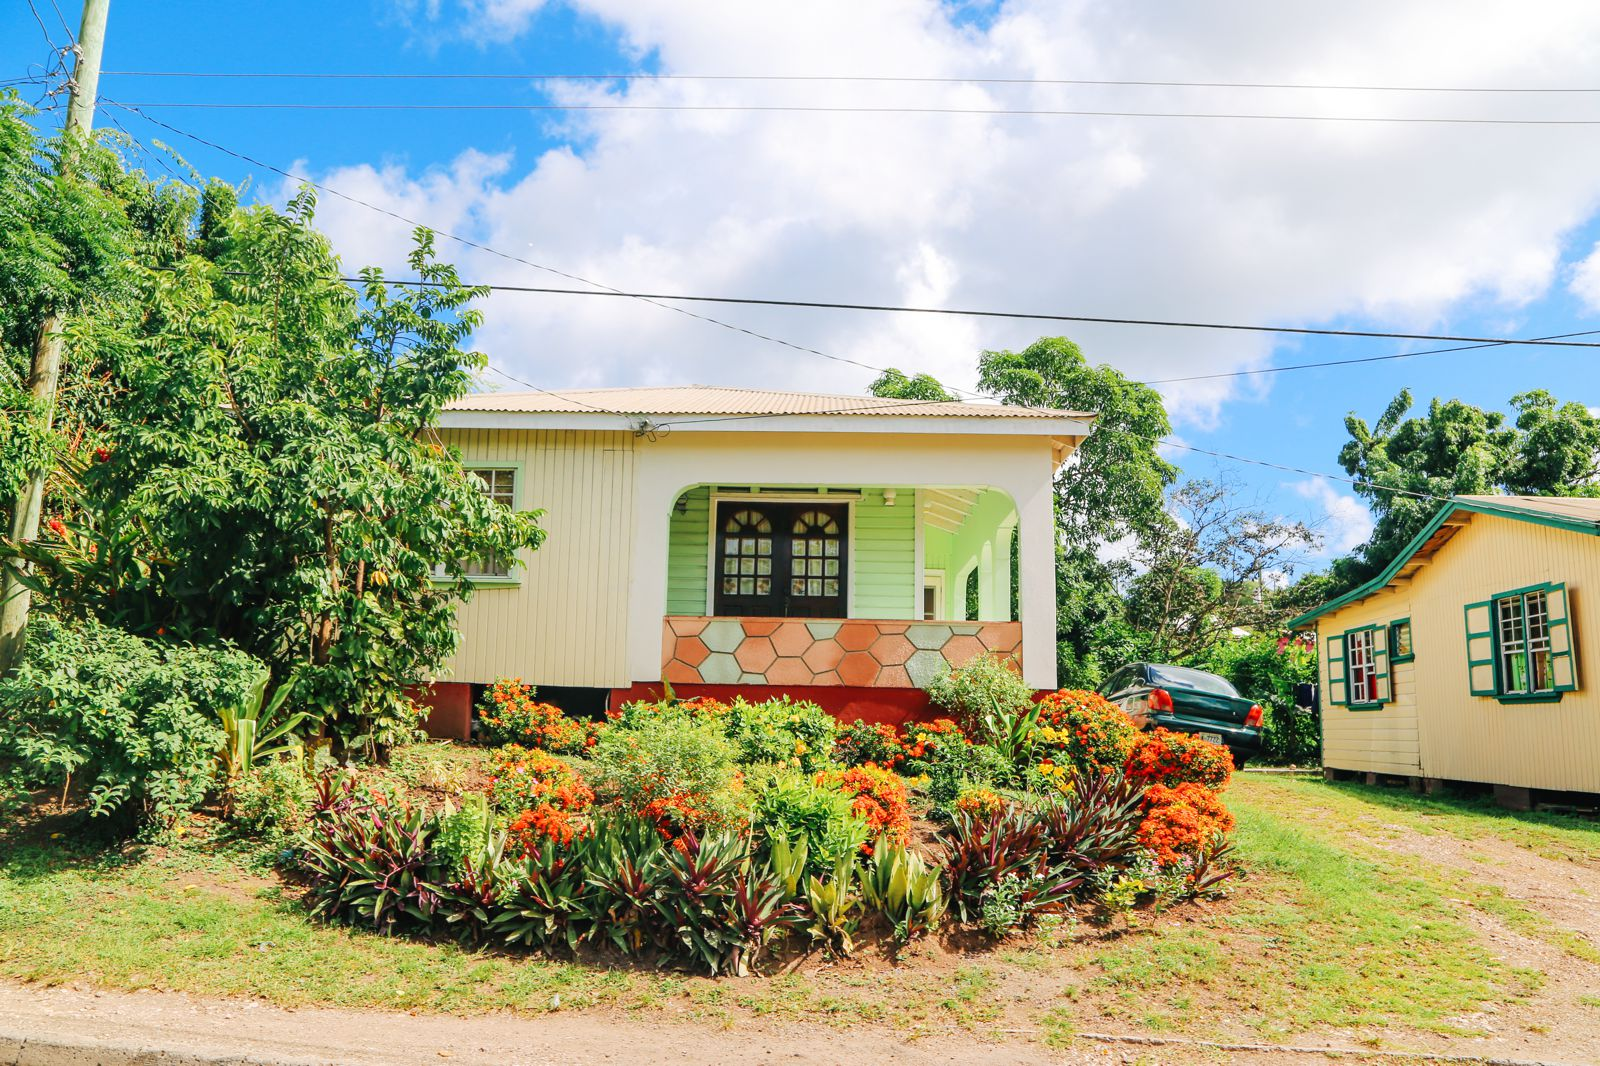 Exploring The Caribbean Island Of Antigua By Land - Part 2 (55)